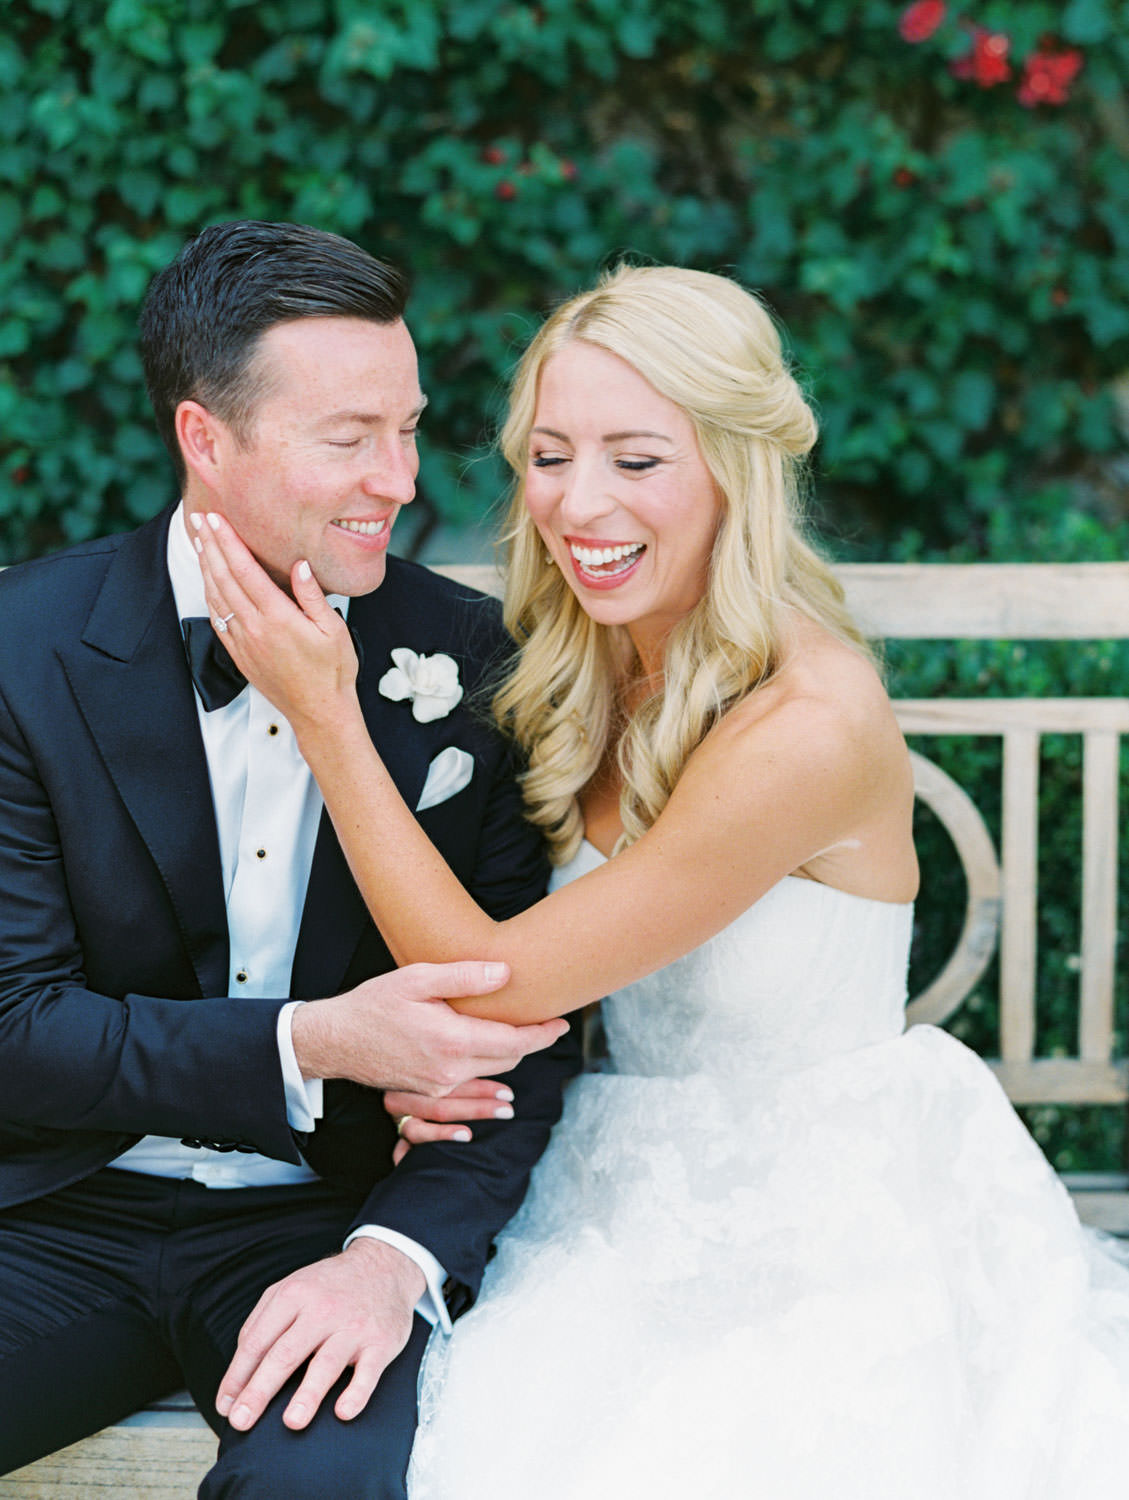 Bride and groom laughing together. Bride in lace Watters sweetheart gown with her hair half up and curled. Groom in classic black tuxedo with single white rose for boutonniere. Miramonte Resort wedding. Film photography by Cavin Elizabeth.